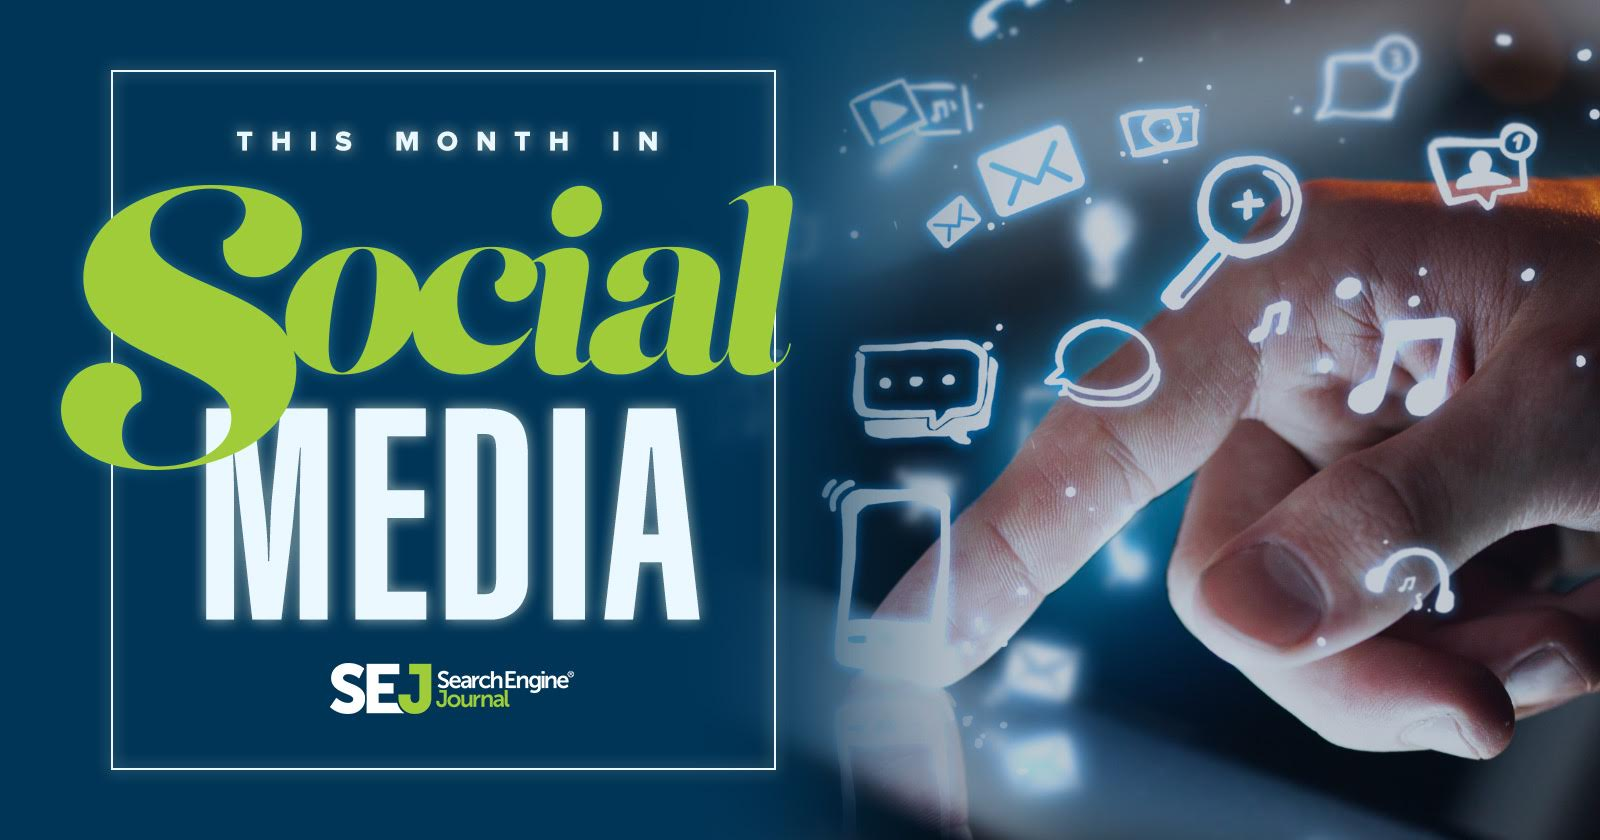 18 Social Media Updates You May Have Missed in October by @thebigdebowski